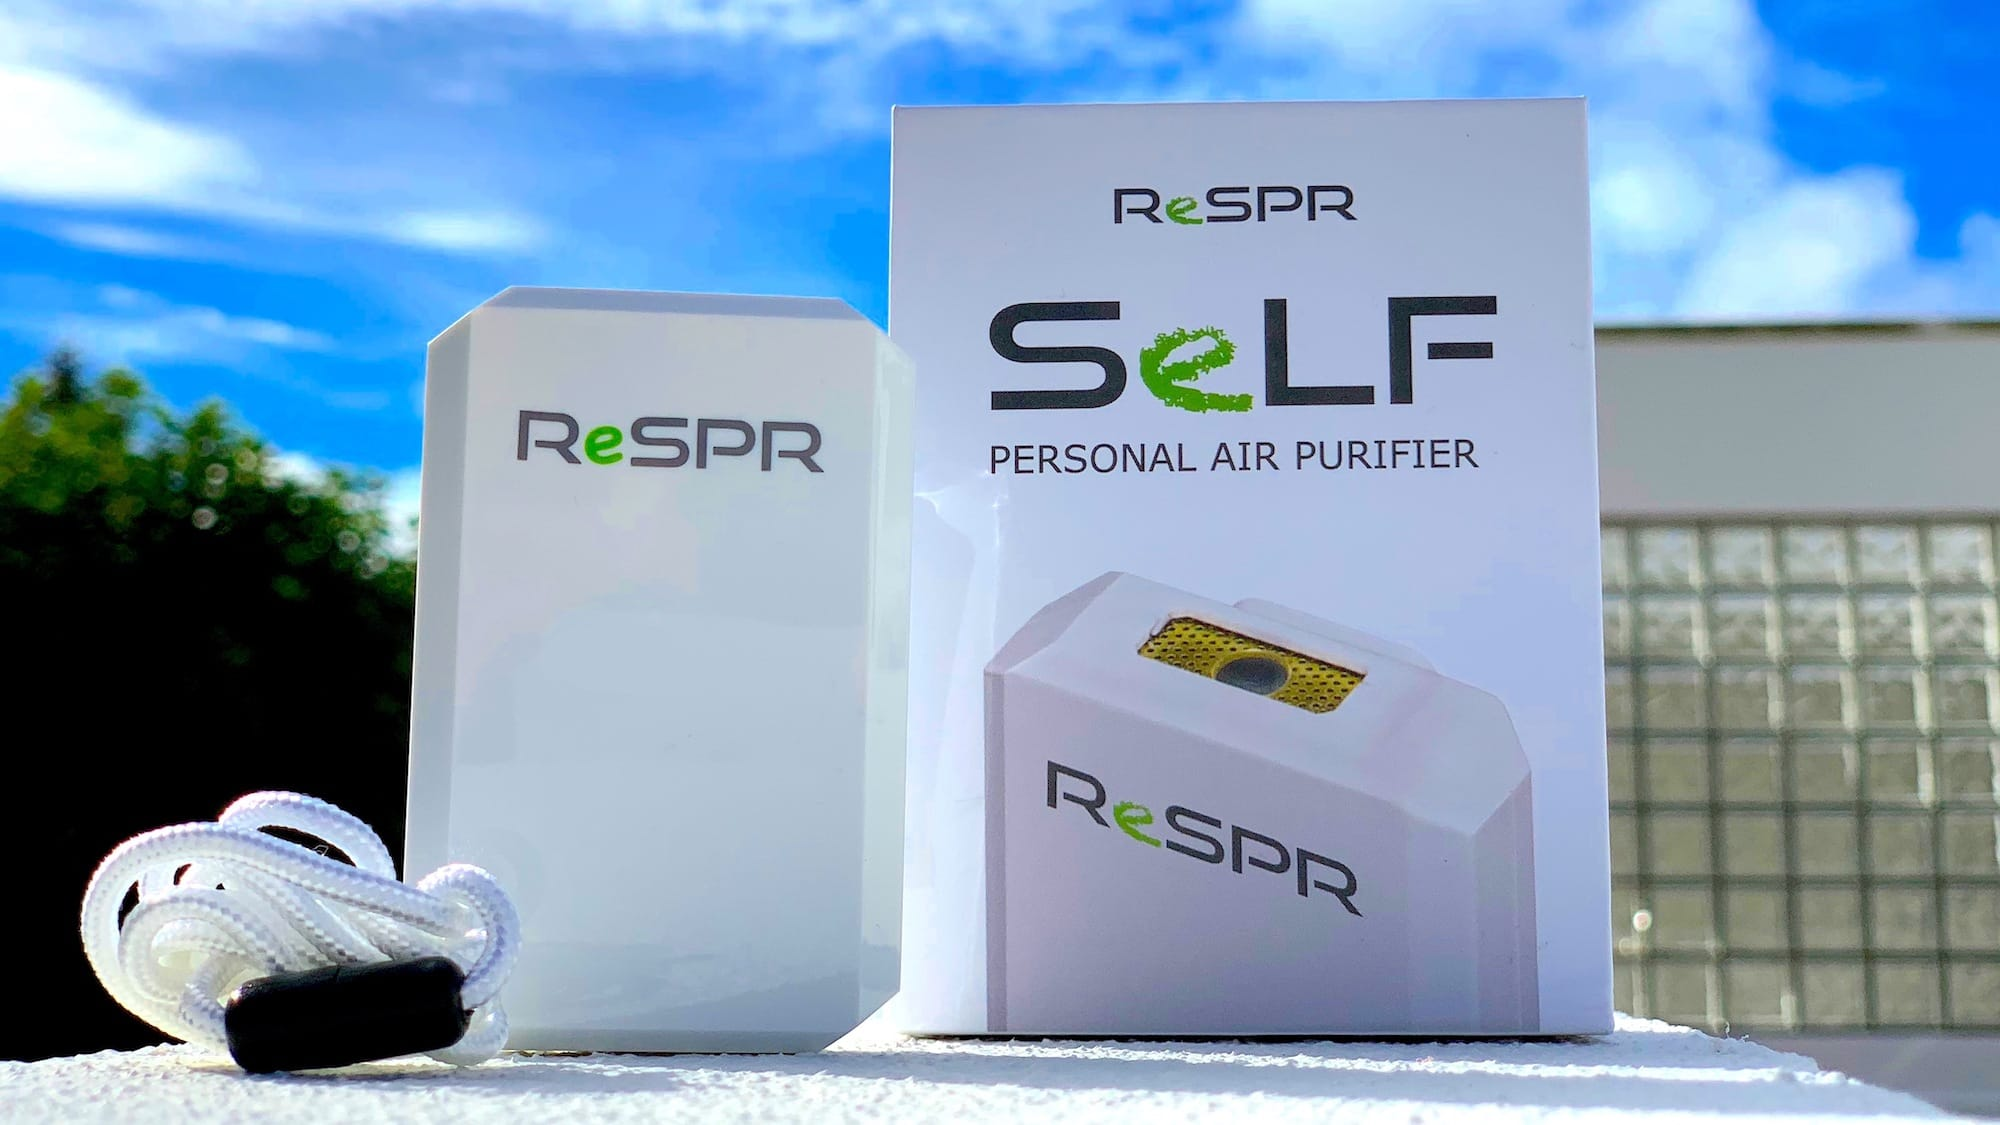 ReSPR SeLF Wearable Air Purifier